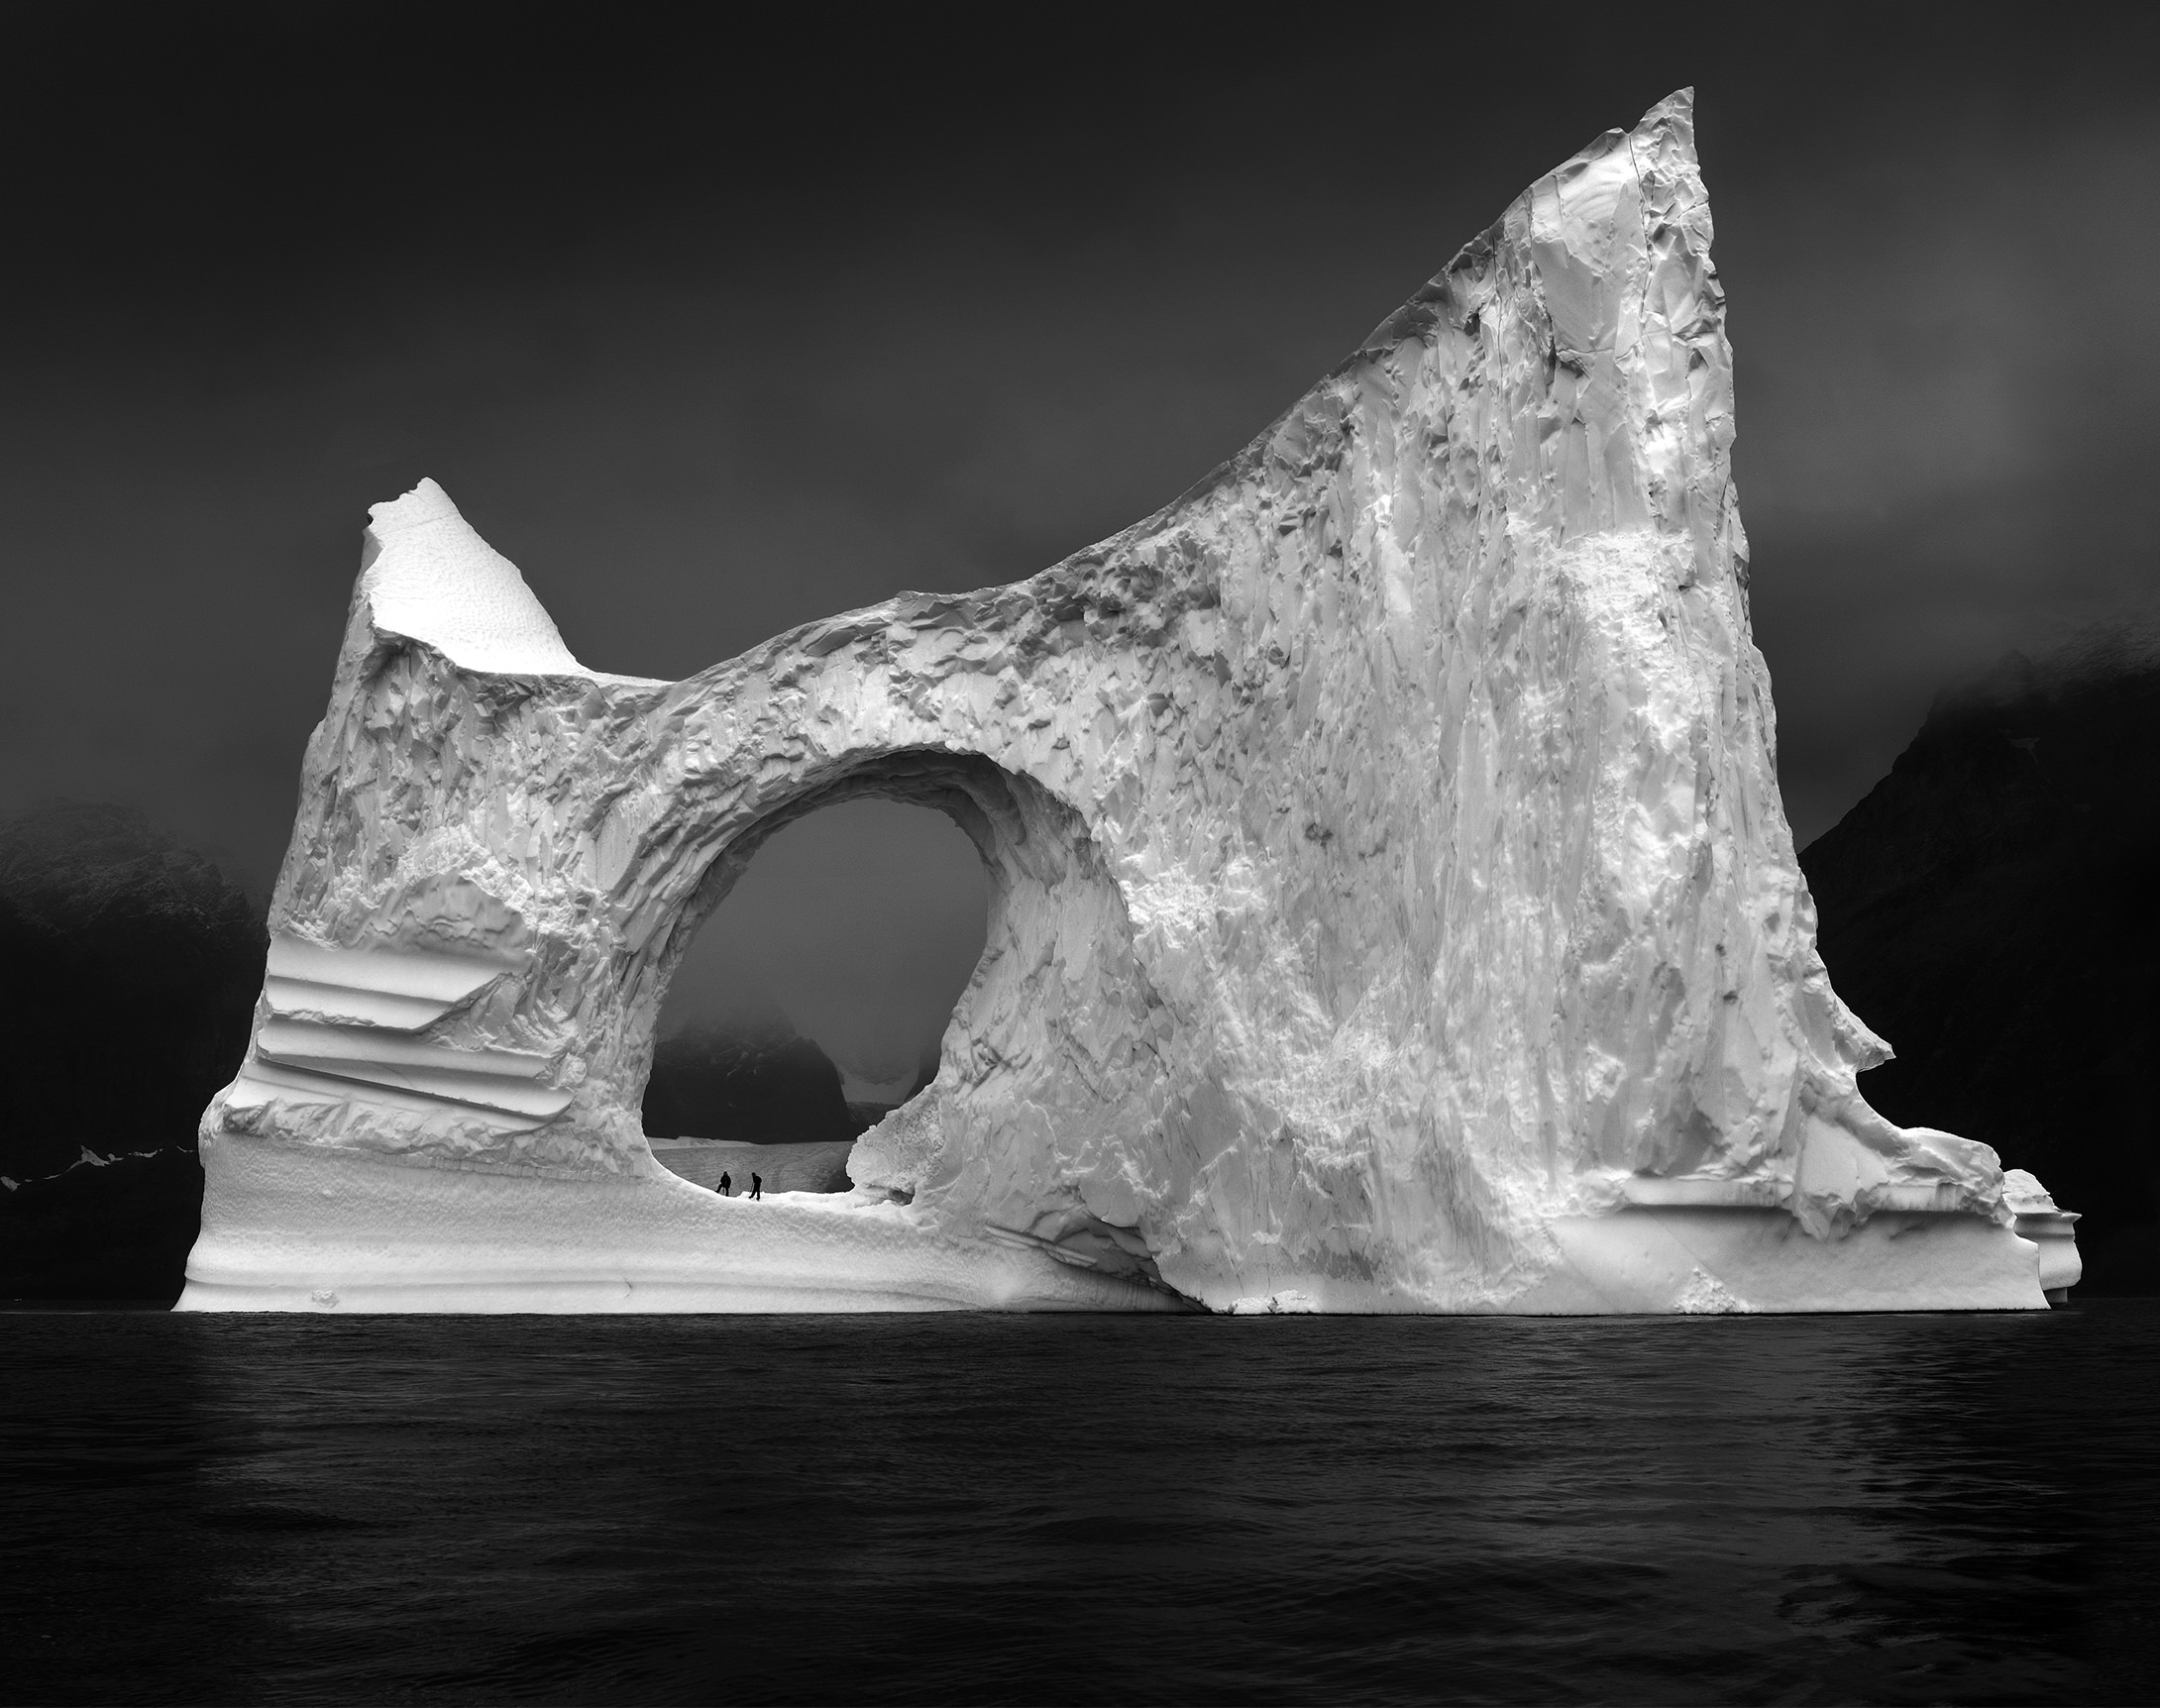 Ragnar Axelsson Photographie Islande Glacier Faces of The North Last days In The Arctic